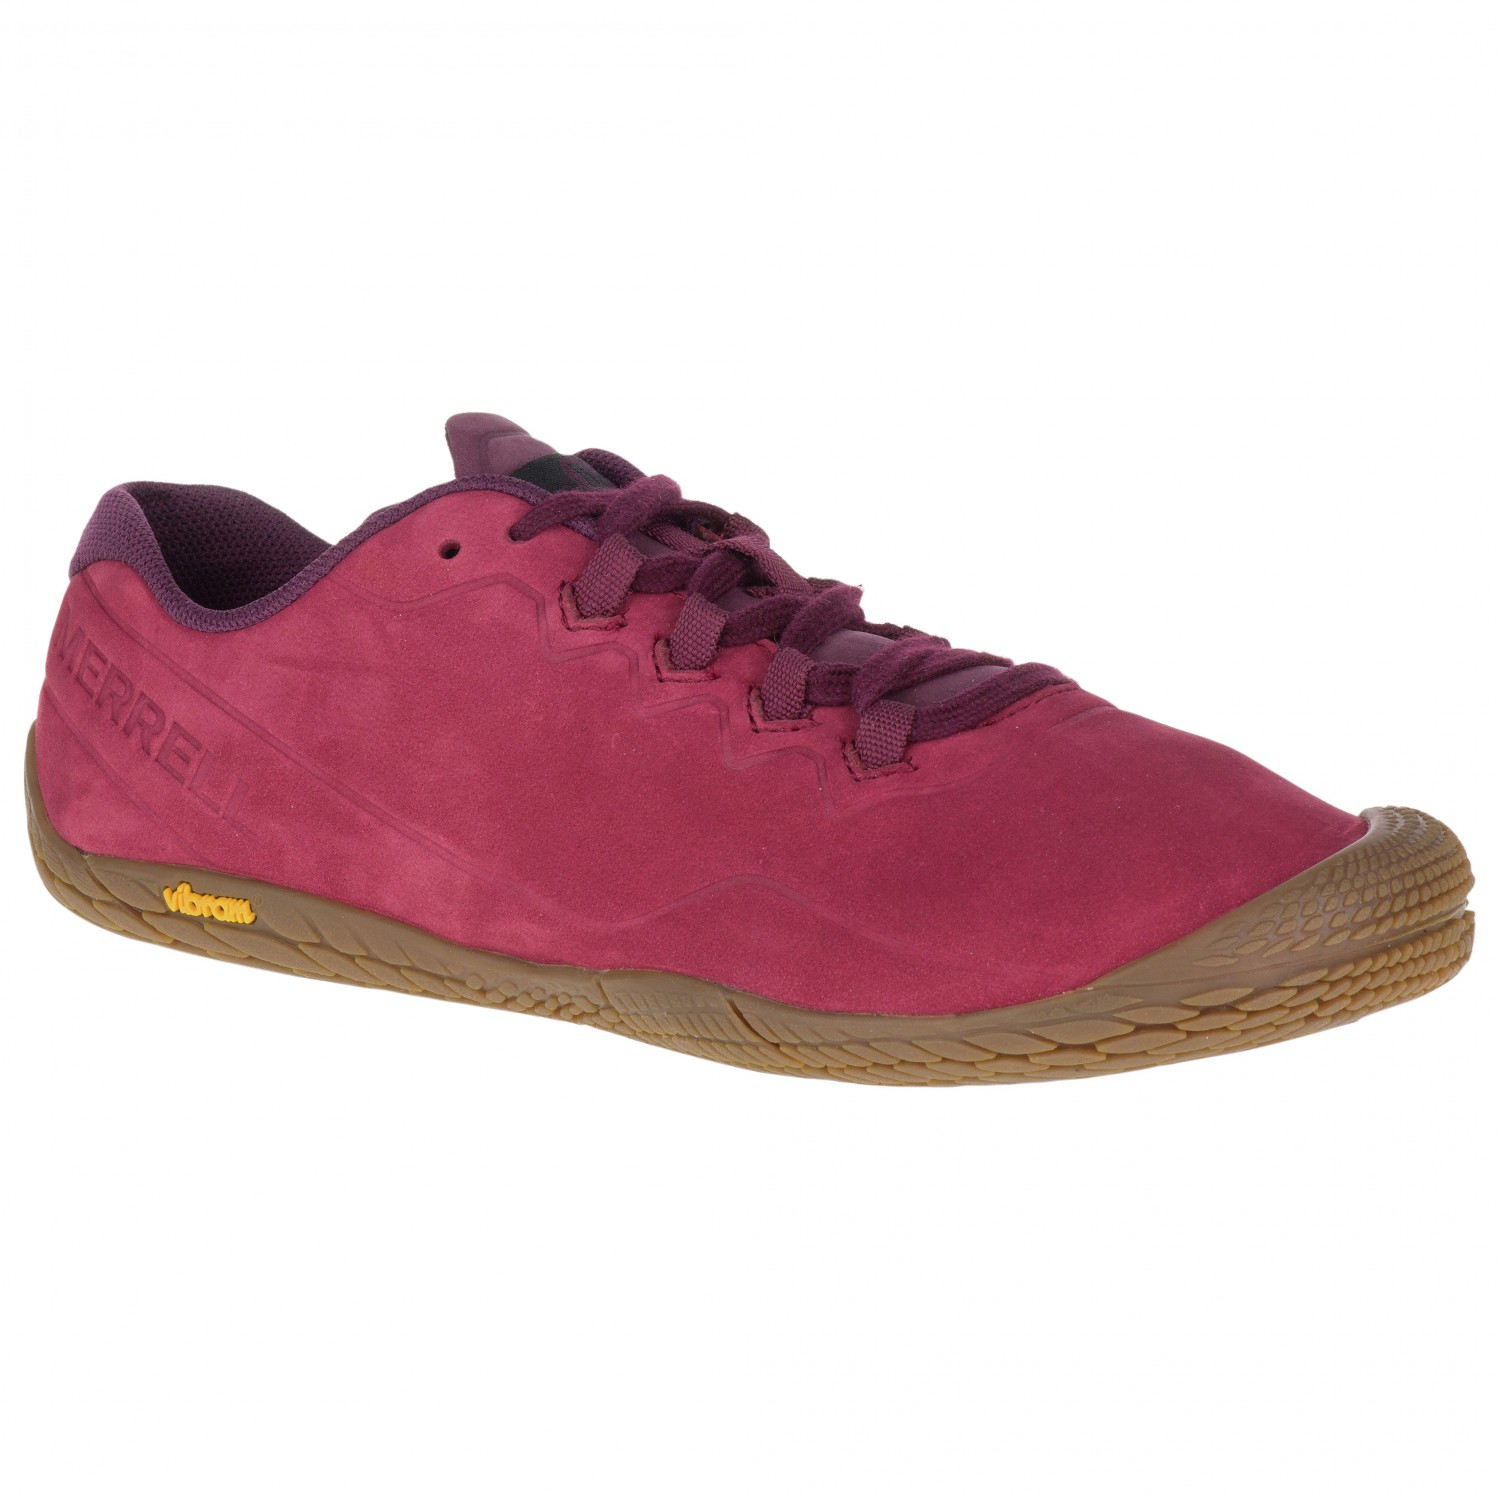 best service 68fd4 9935b Merrell - Women's Vapor Glove 3 Luna Leather - Scarpe per trail running -  Pomegranate | 37 (EU)